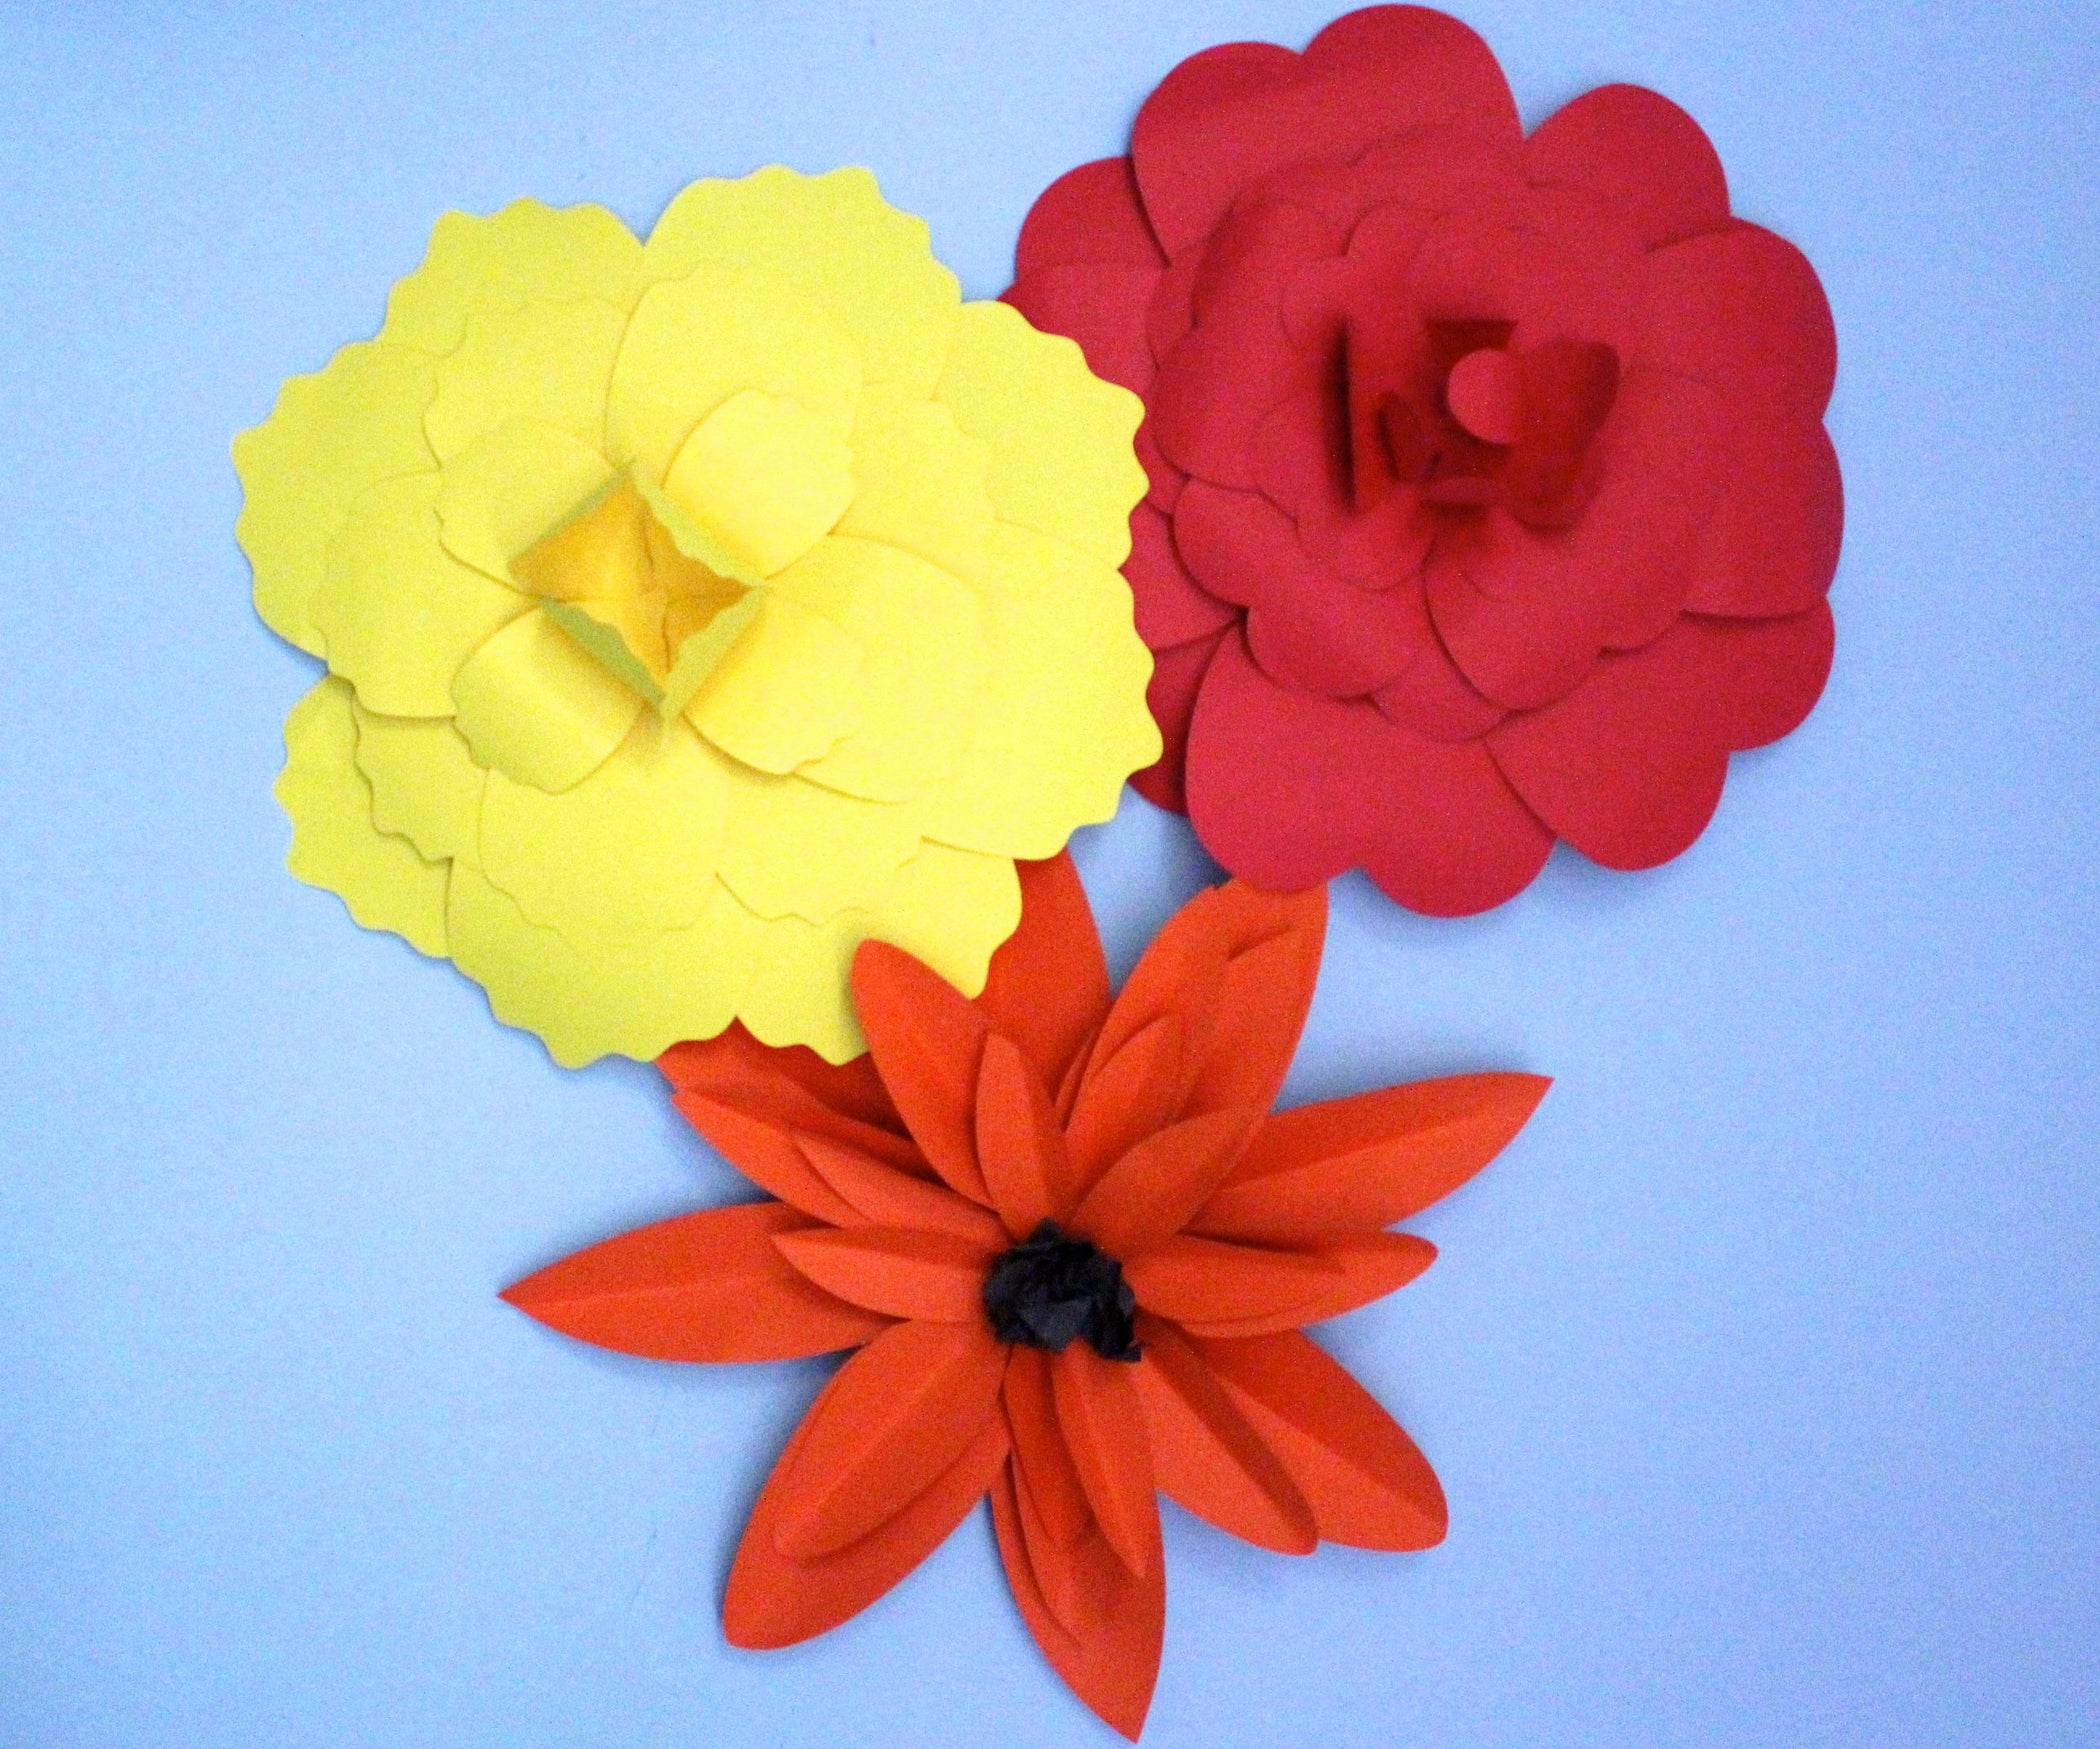 Giant Paper Flowers 9 Steps With Pictures